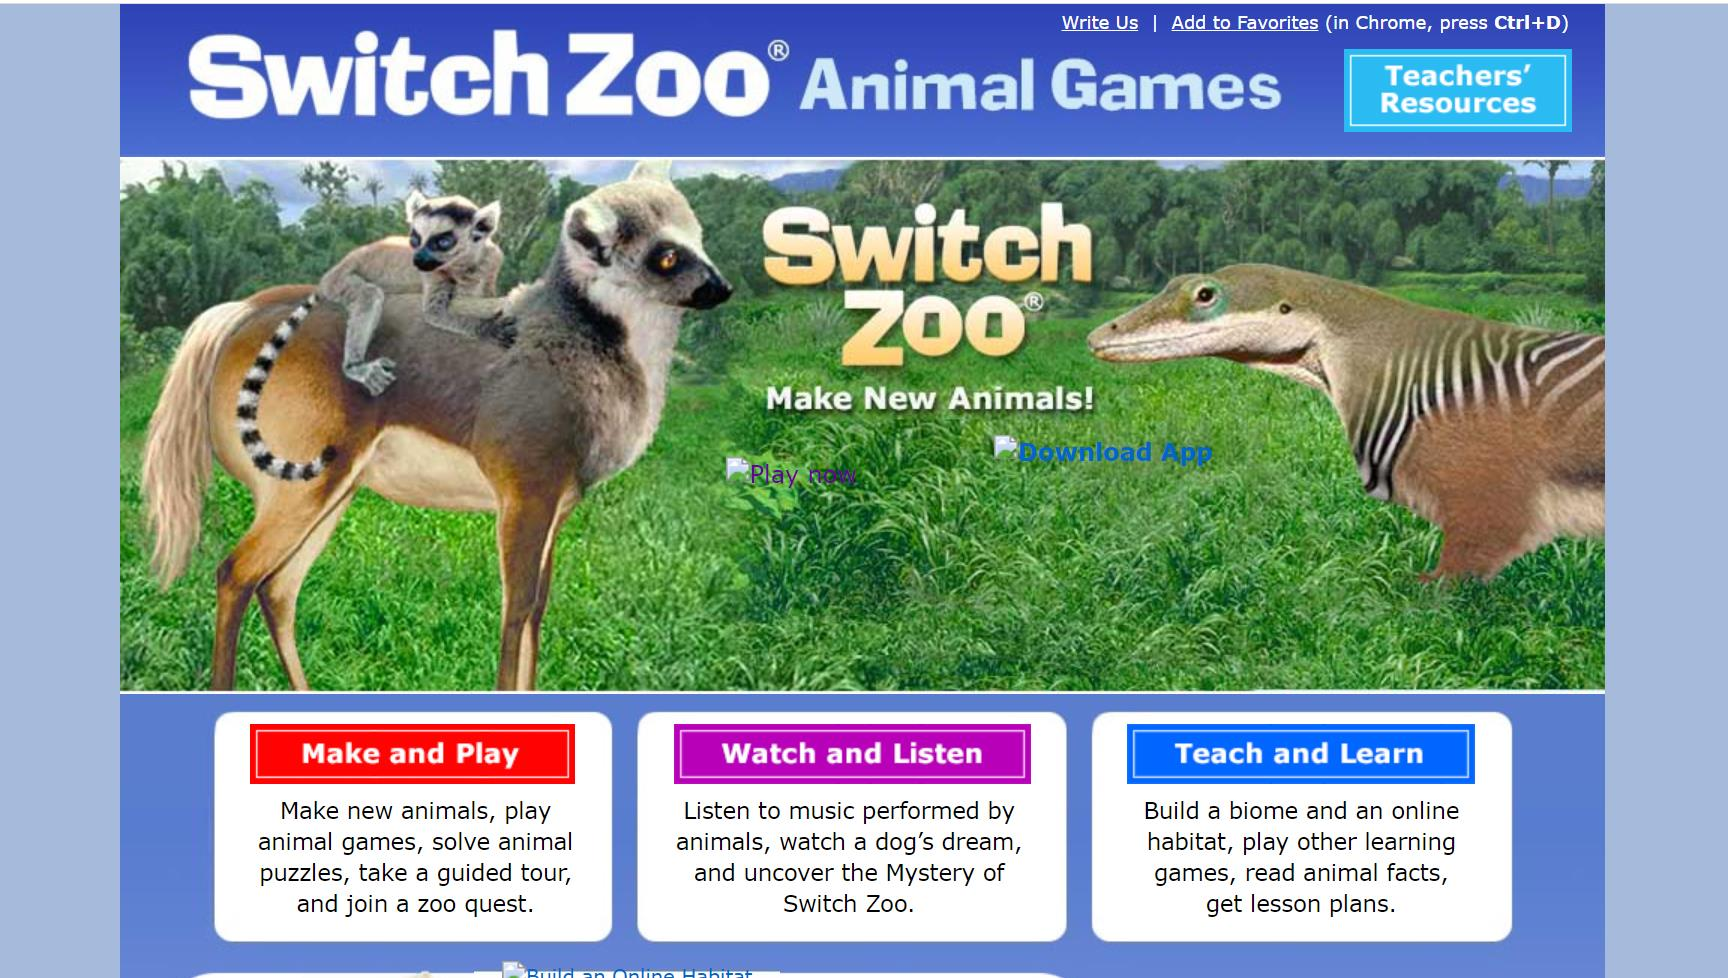 Switch Zoo Animal Games